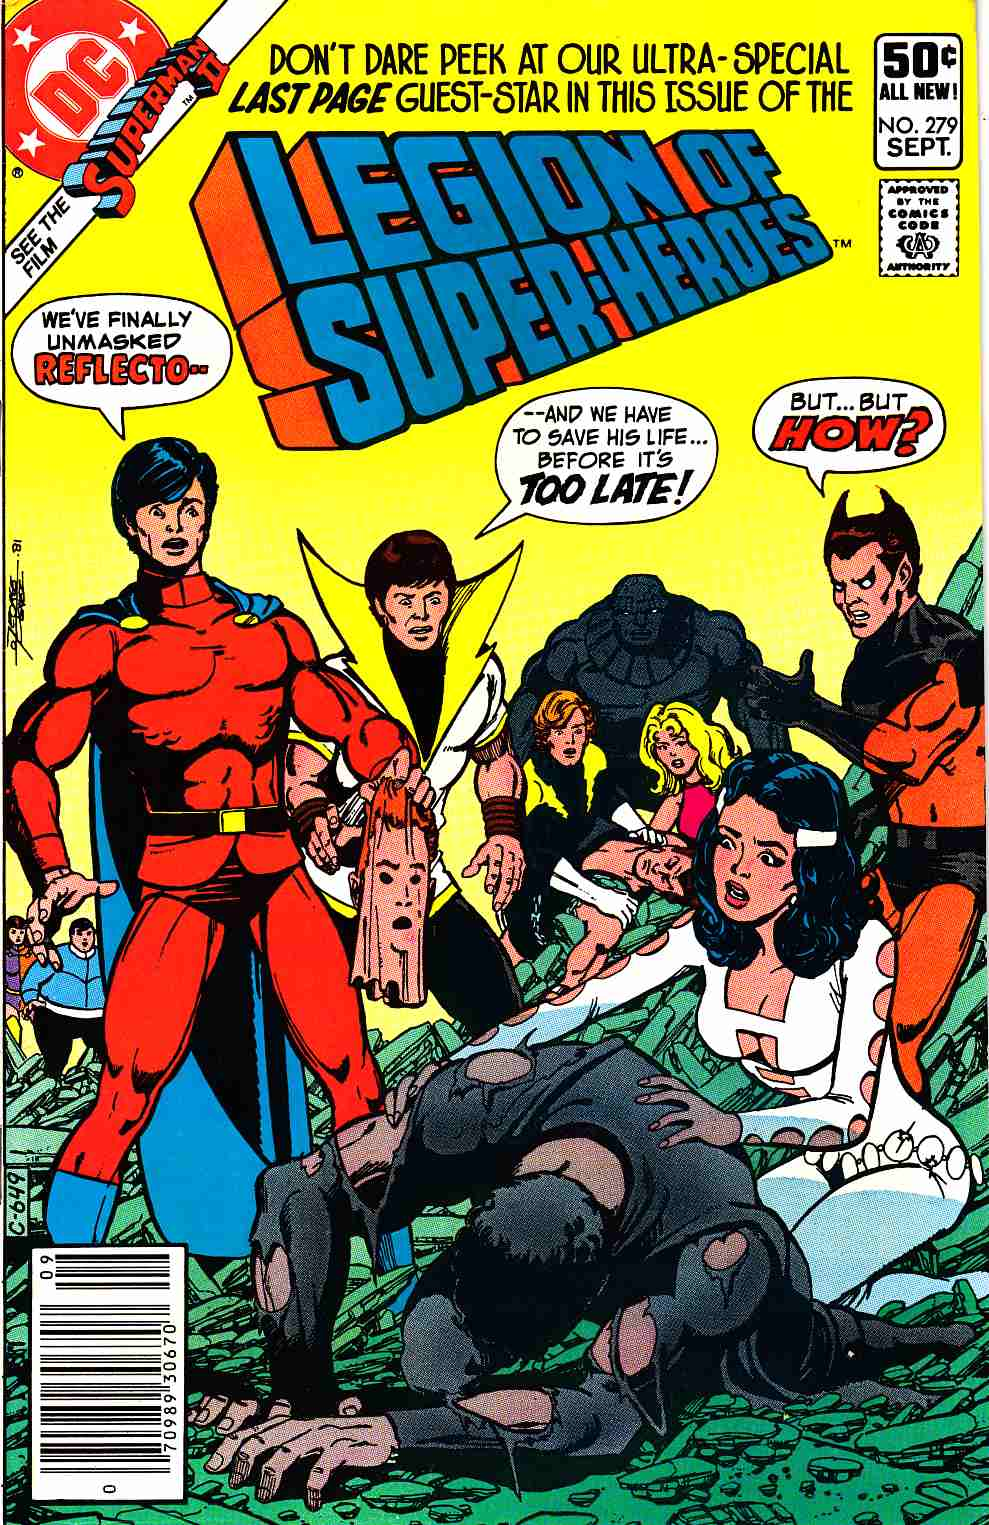 Legion of Super-Heroes #279 Newsstand Edition Very Fine (8.0) [DC Comic] THUMBNAIL